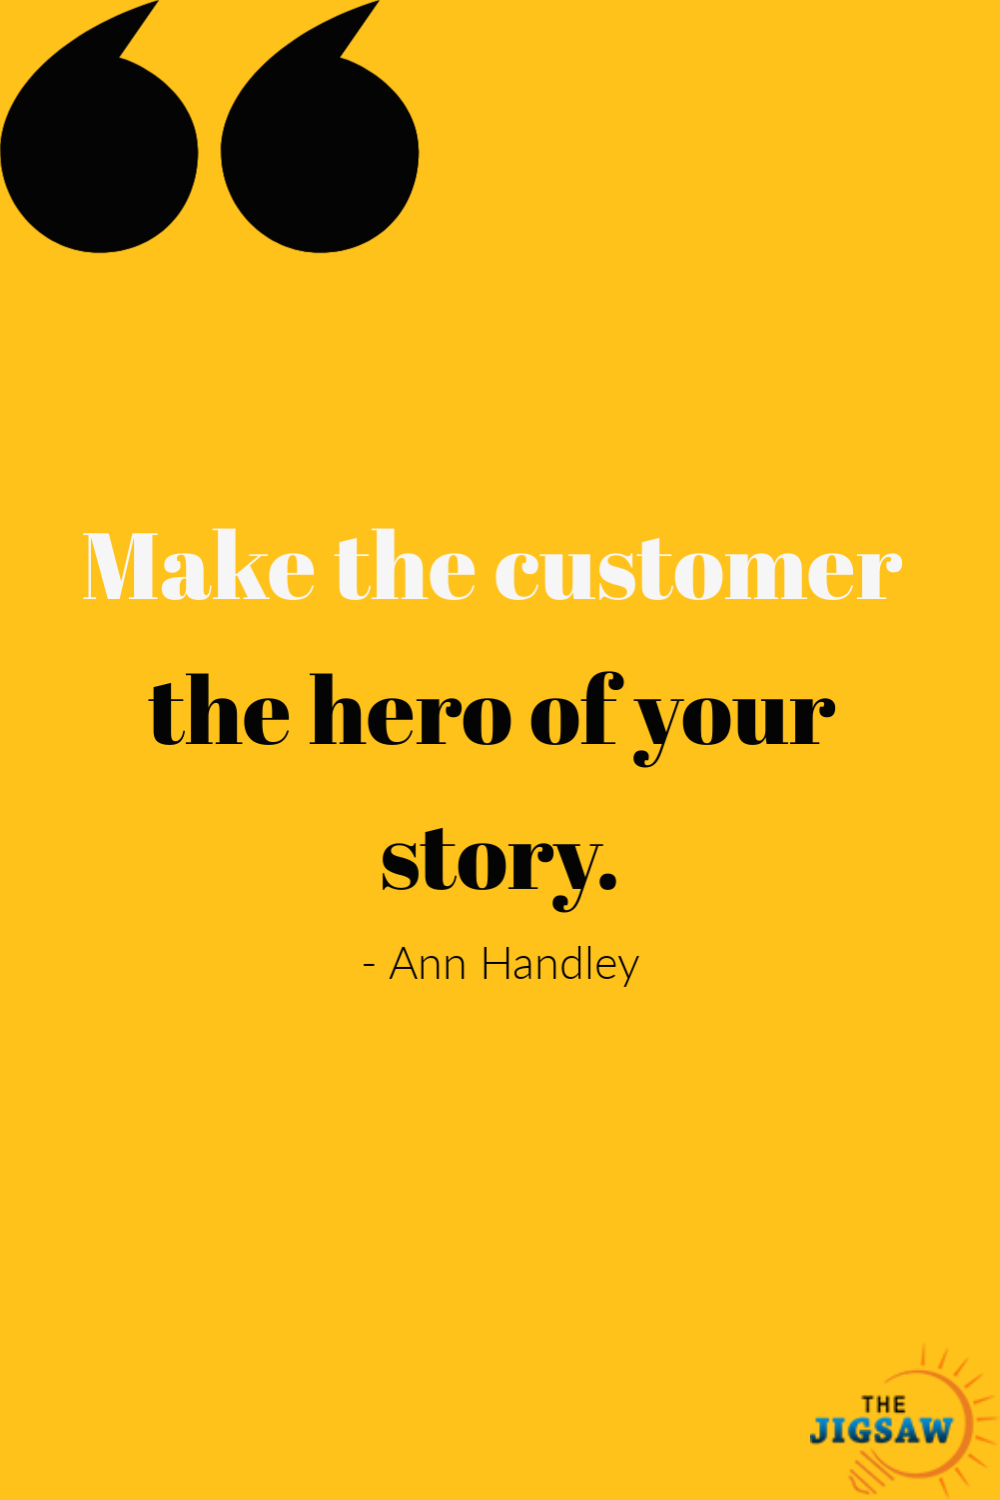 Make the customer the hero of your story.